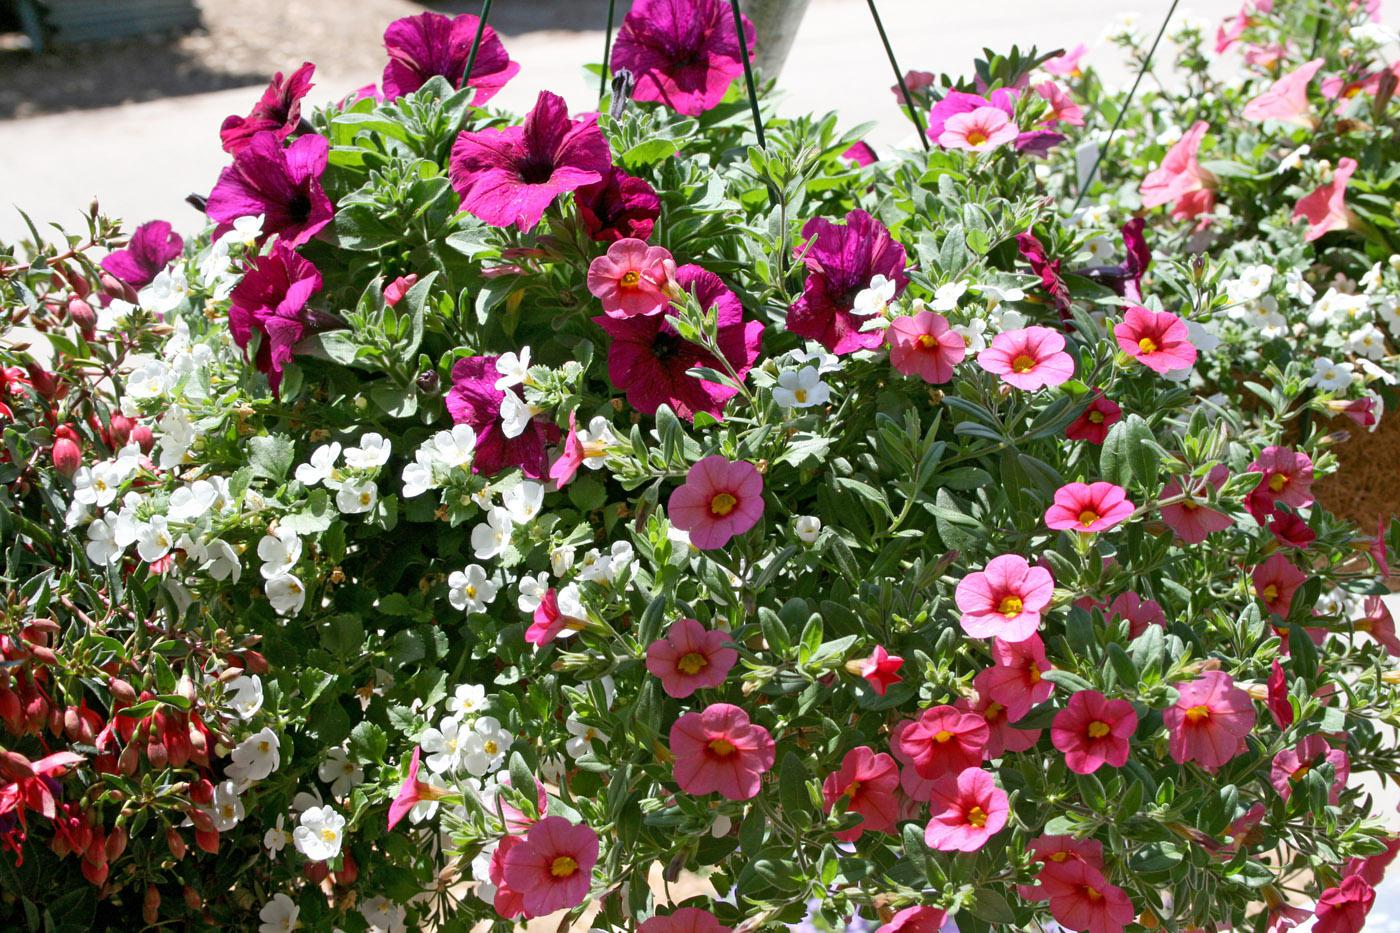 Practice arranging plants while visiting local garden centers. The results can make for beautiful arrangements, like this Giant White bacopa, Painted Coral calibrachoa and Lobster Potunia mix. (Photo by Gary Bachman)